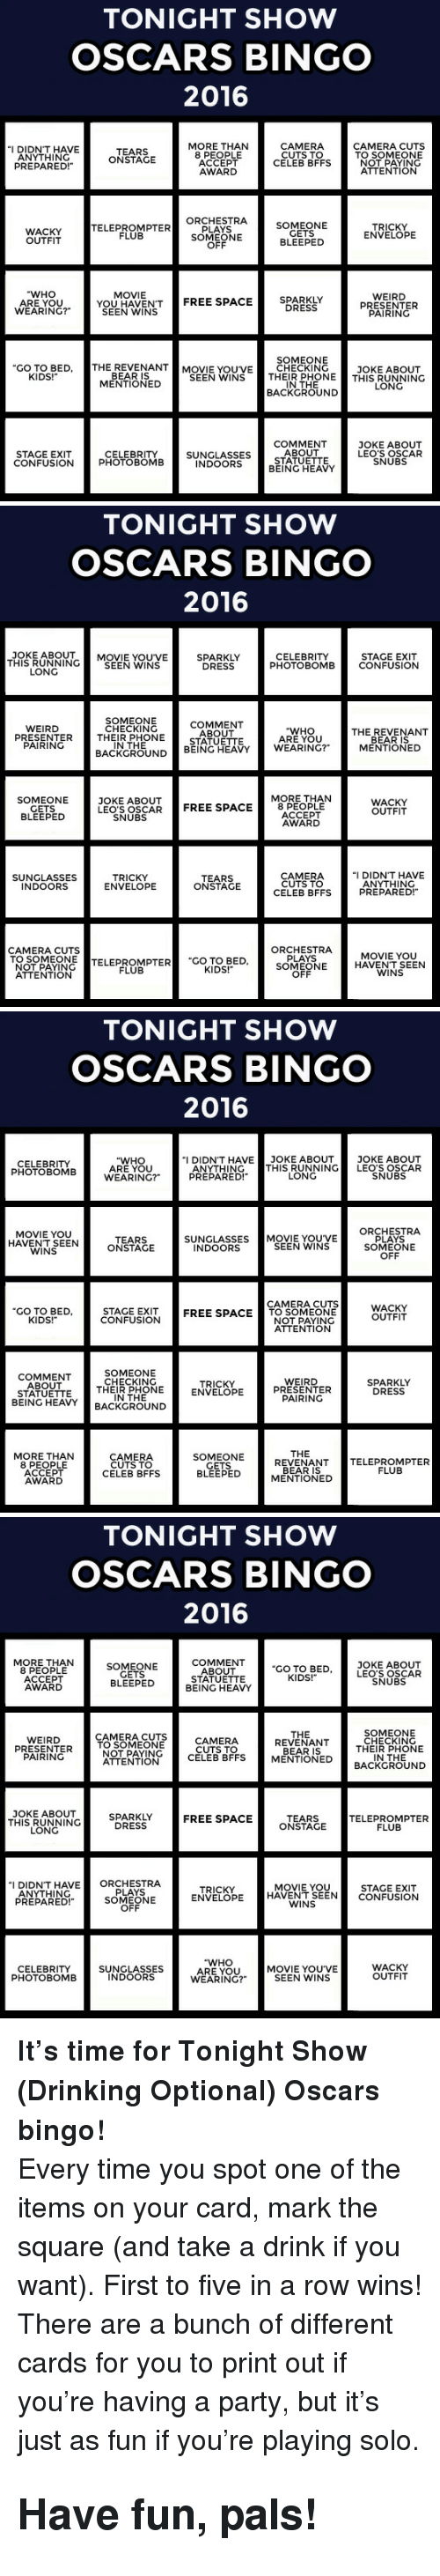 """Running In The: TONIGHT SHOW  OSCARS BINGO  2016  MORE THAN  8 PEOPLE  ACCEPT  AWARD  CAMERA  CUTS TO  CELEB BFFS  CAMERA CUTS  TO SOMEONE  NOT PAYING  ATTENTION  I DIDN'T HAVE  ANYTHING  TEARS  ONSTAGE  PREPARED!  SOMEONE  GETS  BLEEPED  WACKY  OUTFIT  TELEPROMPTER  FLUPTER ORCH  PLAYS  SOMEONE  OFF  TRICKY  ENVELOPE  """"WHO  ARE YOU  WEARING?""""  MOVIE  SEEN WENSTREE SPACE  SPARKLY  DRESS  WEIRD  PRESENTER  PAIRING  SOMEONE  GO TO BED, THE REVENANTMOVIE YOU'VE CHECKING  JOKE ABOUT  KIDS!  BEAR IS  MENTIONED  SEEN WINS THEIR PHONETHIS RUNNING  IN THE  BACKGROUND  LONG  COMMENT  ABOUT  STATUETTE  BEING HEAVY  JOKE ABOUT  LEO'S OSCAR  SNUBS  STAGE EXIT  CONFUSION  CELEBRITY  PHOTOBOMB  SUNGLASSES  INDOORS   TONIGHT SHOW  OSCARS BINGO  2016  THIS RUNNING  LONG  JOKE ABOUTMOVIE YOU'VE  SPARKLY  DRESS  STAGE EXIT  PHOTOBOMBCONFUSION  CELEBRITY  SEEN WINS  SOMEONE  CHECKING  COMMENT  ABOUT  STATUETTE  WEIRD  """"WHO  ARE YOU  THE REVENANT  PRESENTERTHEIR PHONE  PAIRING  IN THE  MENTIONED  BACKGROUND BEING HEAVY WEARING?  MORE THAN  SOMEONE  GETS  BLEEPED  JOKE ABOUT  LEO'S OSCARFREE SPACE8 P  WACKY  OUTFIT  ACCEPT  AWARD  SNUBS  SUNGLASSES  INDOORS  TRICKY  ENVELOPE  TEARS  ONSTAGE  CAMERA  CUTS TO  CELEB BFFS  I DIDN'T HAVE  ANYTHING  PREPARED!  ORCHESTRA  PLAYS  SOMEONE  OFF  CAMERA CUTS  TO SOMEONE  OTPAYINCTELEPROMPTER """"CO TO BED  MOVIE YOU  HAVENT SEEN  WINS  FLUB  KIDS!  ATTENTION   TONIGHT SHOW  OSCARS BINGO  2016  """"I DIDN'T HAVE JOKE ABOUT JOKE ABOUT  CELEBRITY  PHOTOBOMB  """"WHO  ARE YOU  WEARING?""""  ANYTHINGTHIS RUNNING LEO'S OSCAR  PREPARED!  LONG  SNUBS  MOVIE YOU  HAVENT SEEN  WINS  ORCHESTRA  PLAYS  SOMEONE  OFF  SUNGLASSES MOVIE YOUVE  TEARS  ONSTAGE  SEEN WINS  INDOORS  CAMERA CUTS  GO TO BED  KIDS!  STAGE EXIT  CONFUSION  WACKY  OUTFIT  FREE SPACETO SOMEONE  NOT PAYING  ATTENTION  COMMENT  ABOUT  STATUETTE  BEING HEAV  SOMEONE  CHECKING  THEIR PHONE  IN THE  WEIRD  PRESENTER  PAIRING  TRICKY  ENVELOPE  SPARKLY  DRESS  CKGROUND  THE  MORE THAN  8 PEOPLE  ACCEPT  AW"""